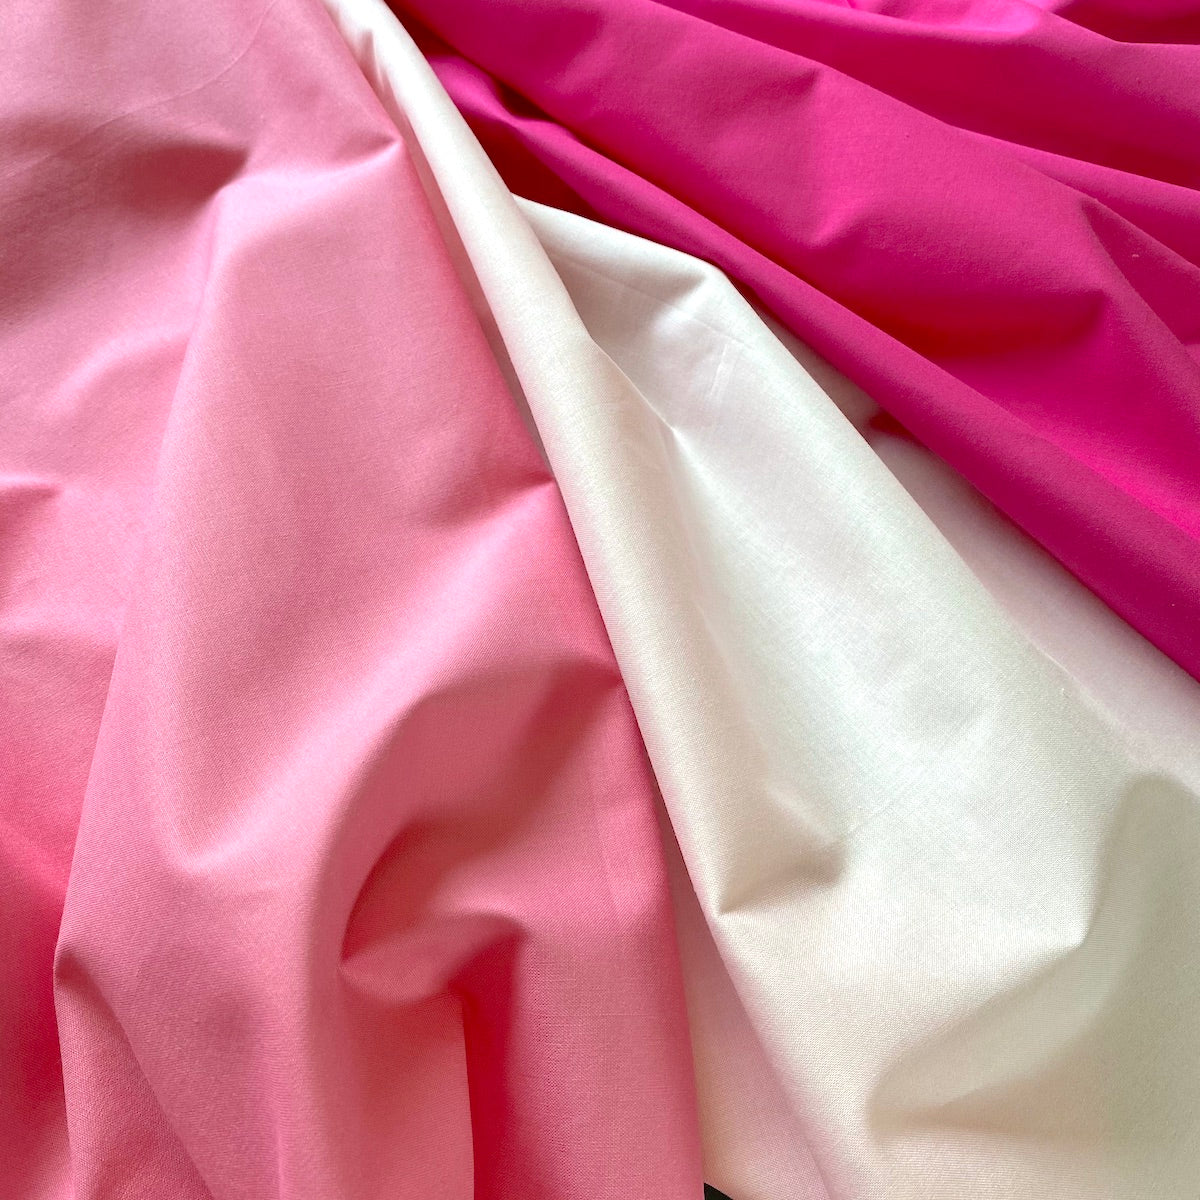 SewPINK fabrics by Sewfinity